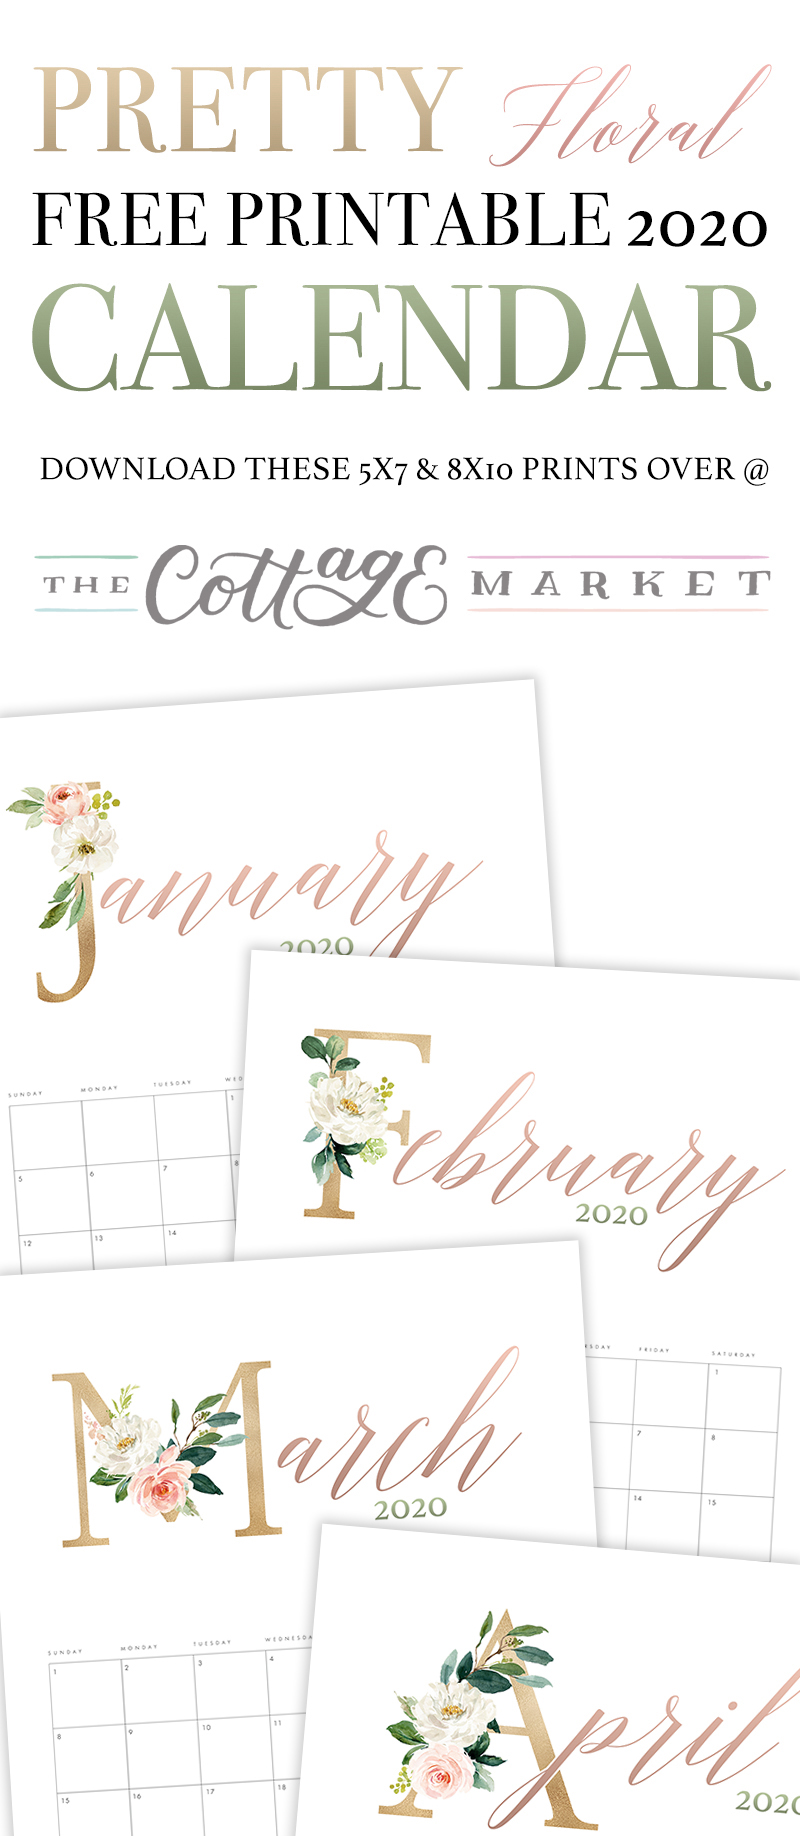 This Pretty Floral Free Printable 2020 Calendar is going to look beautiful on your desk, wall, bulletin board or even in your planner! It will keep you organized all year!